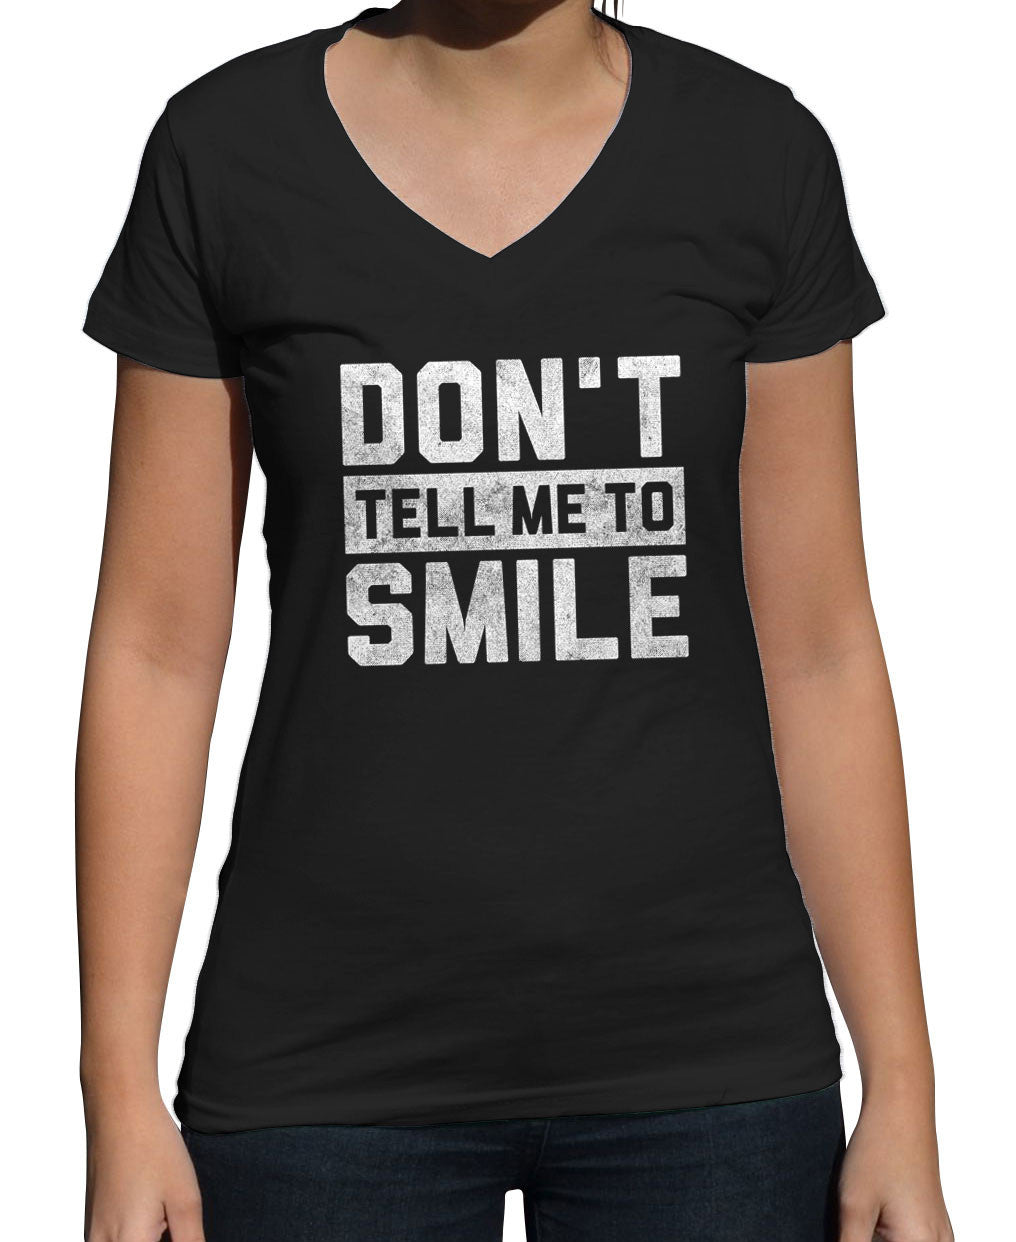 Women's Don't Tell Me to Smile Vneck T-Shirt Street Harassment T-Shirt